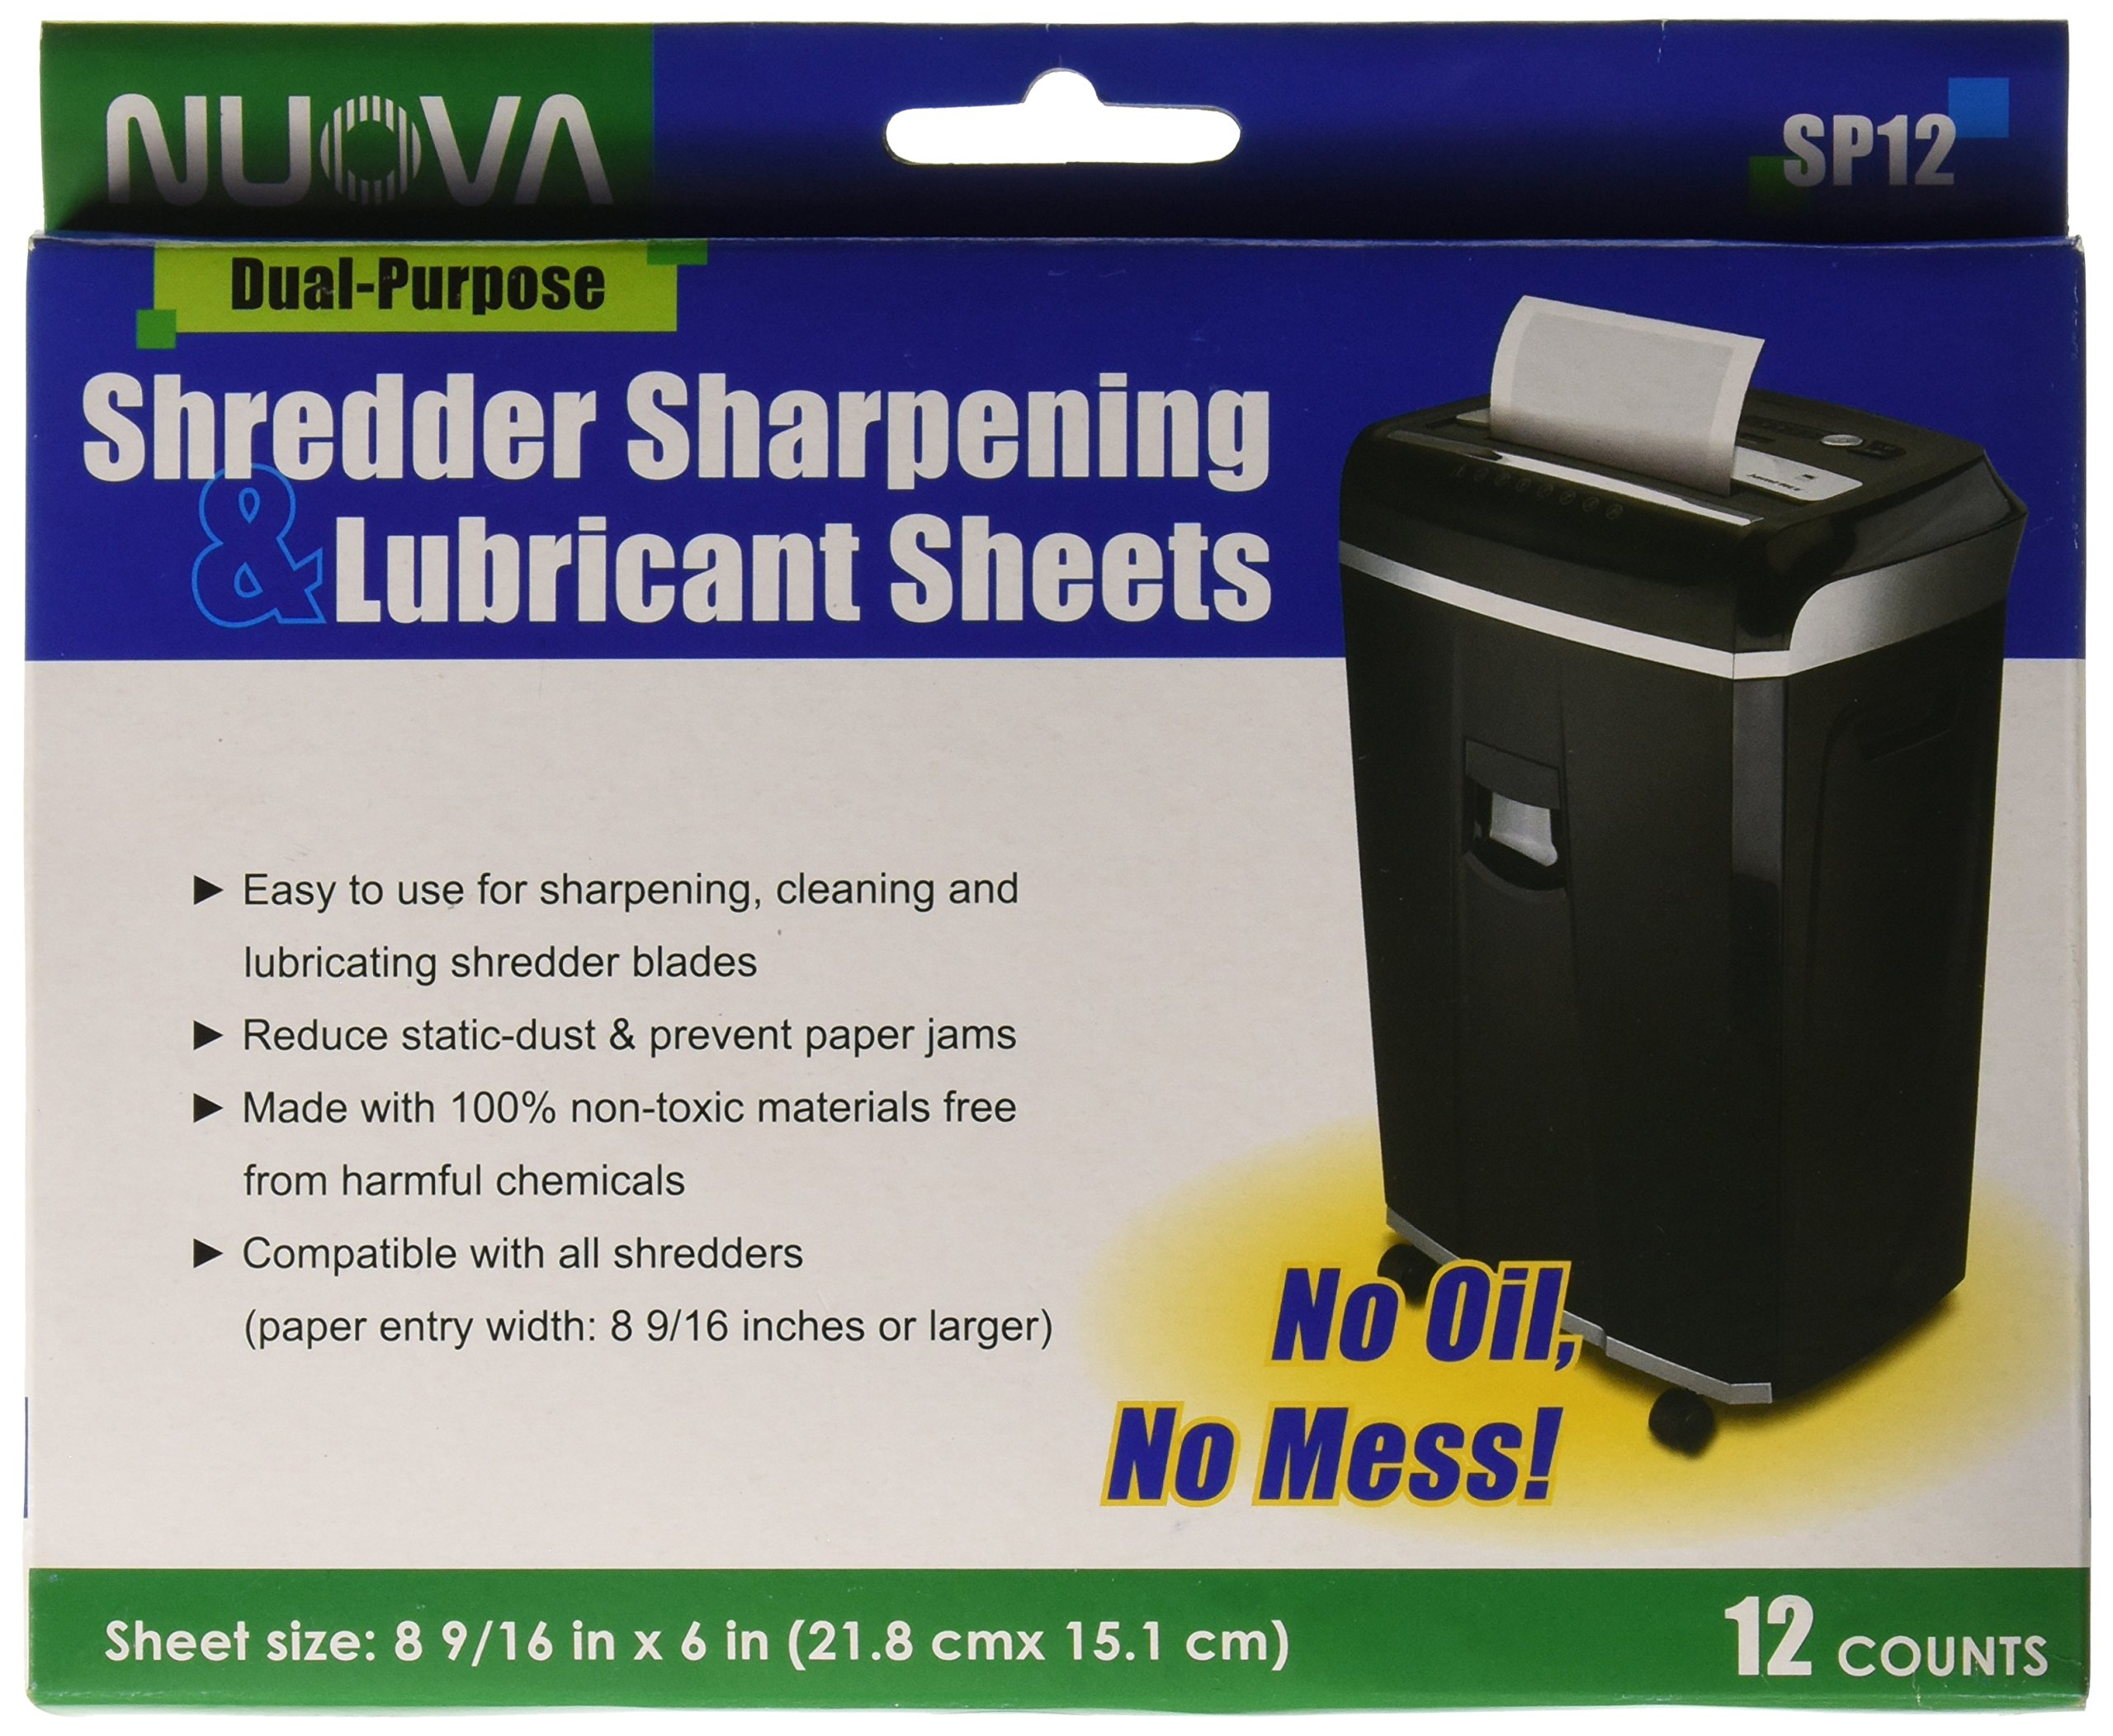 Nuova Shredder Sharpening & Lubricant Sheets - 12 counts by NUOVA (Image #1)